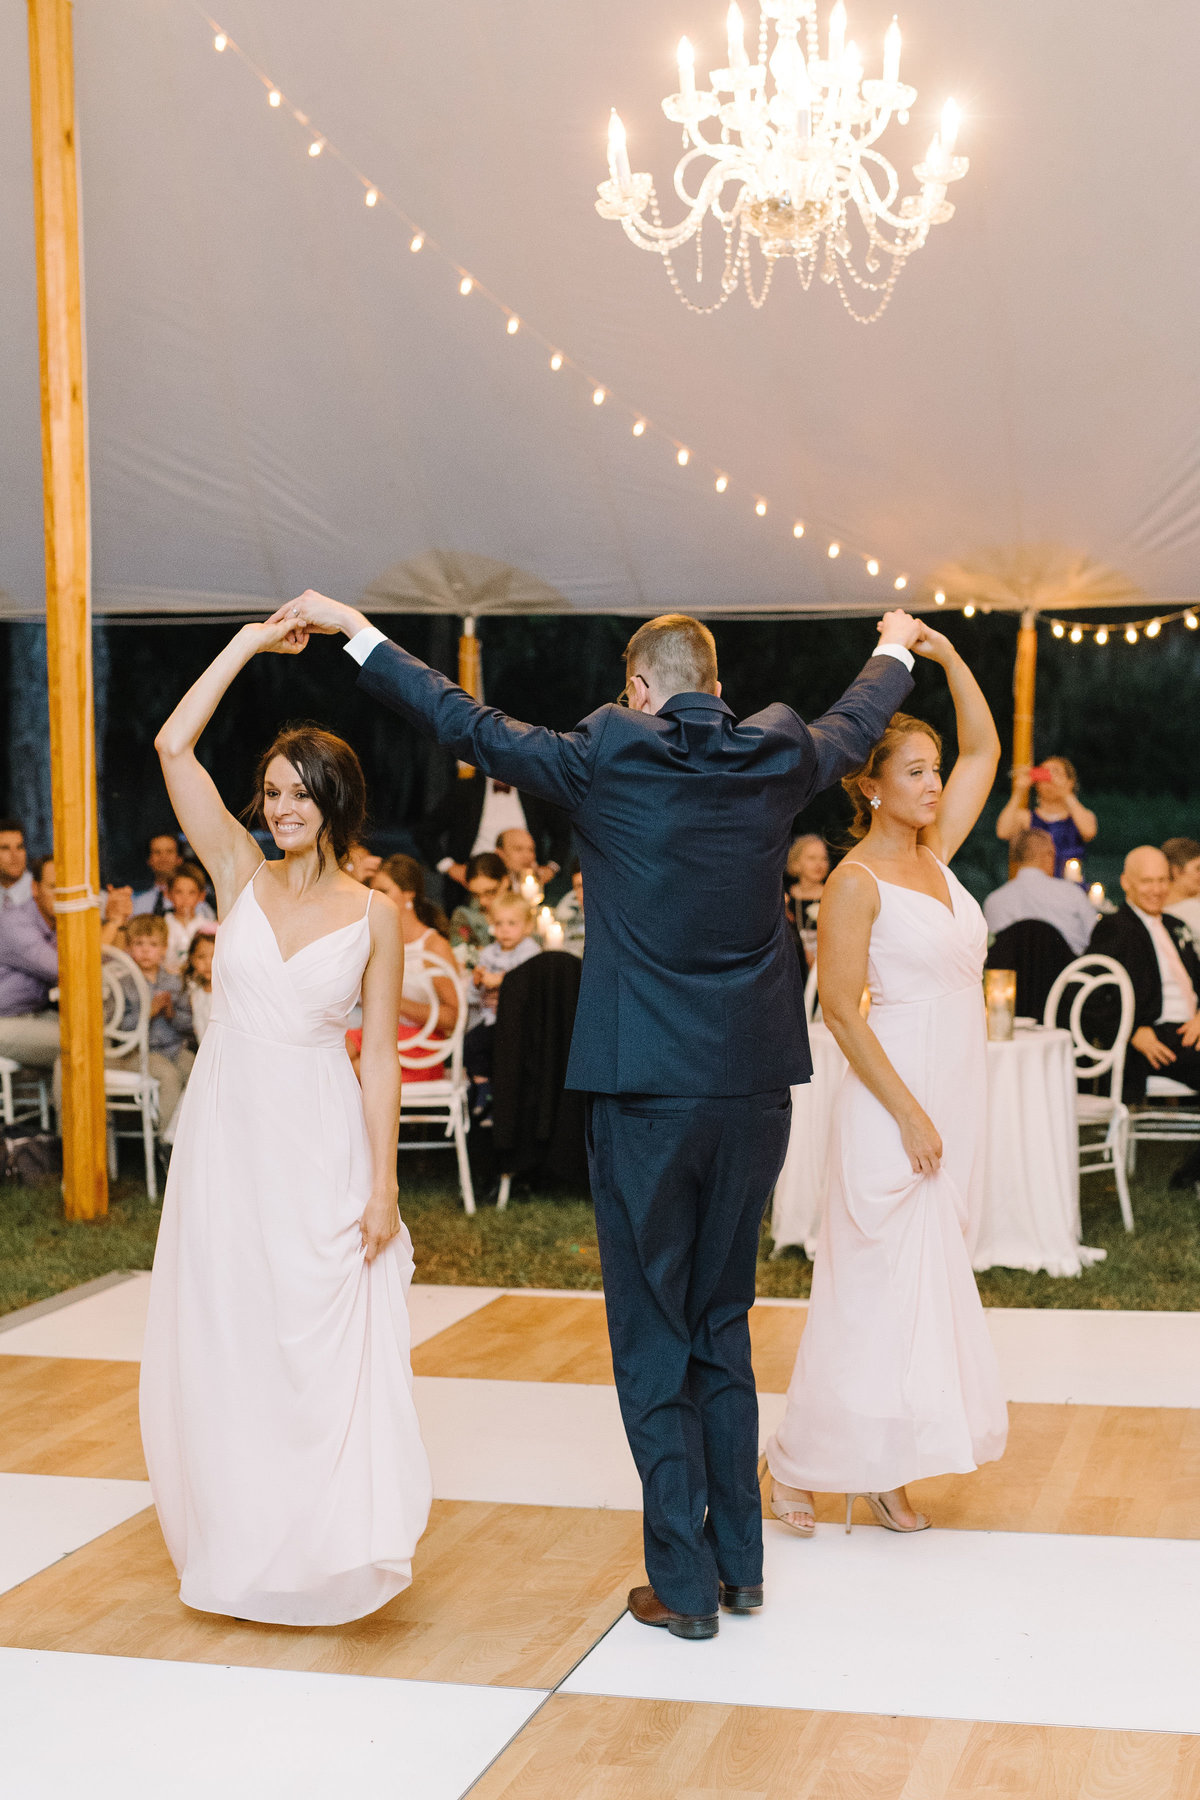 Wedding Party on Birch Wood and White checkered Dance Floor under Sailcloth Tent with Cafe Lighting and Crystal Chandeliers